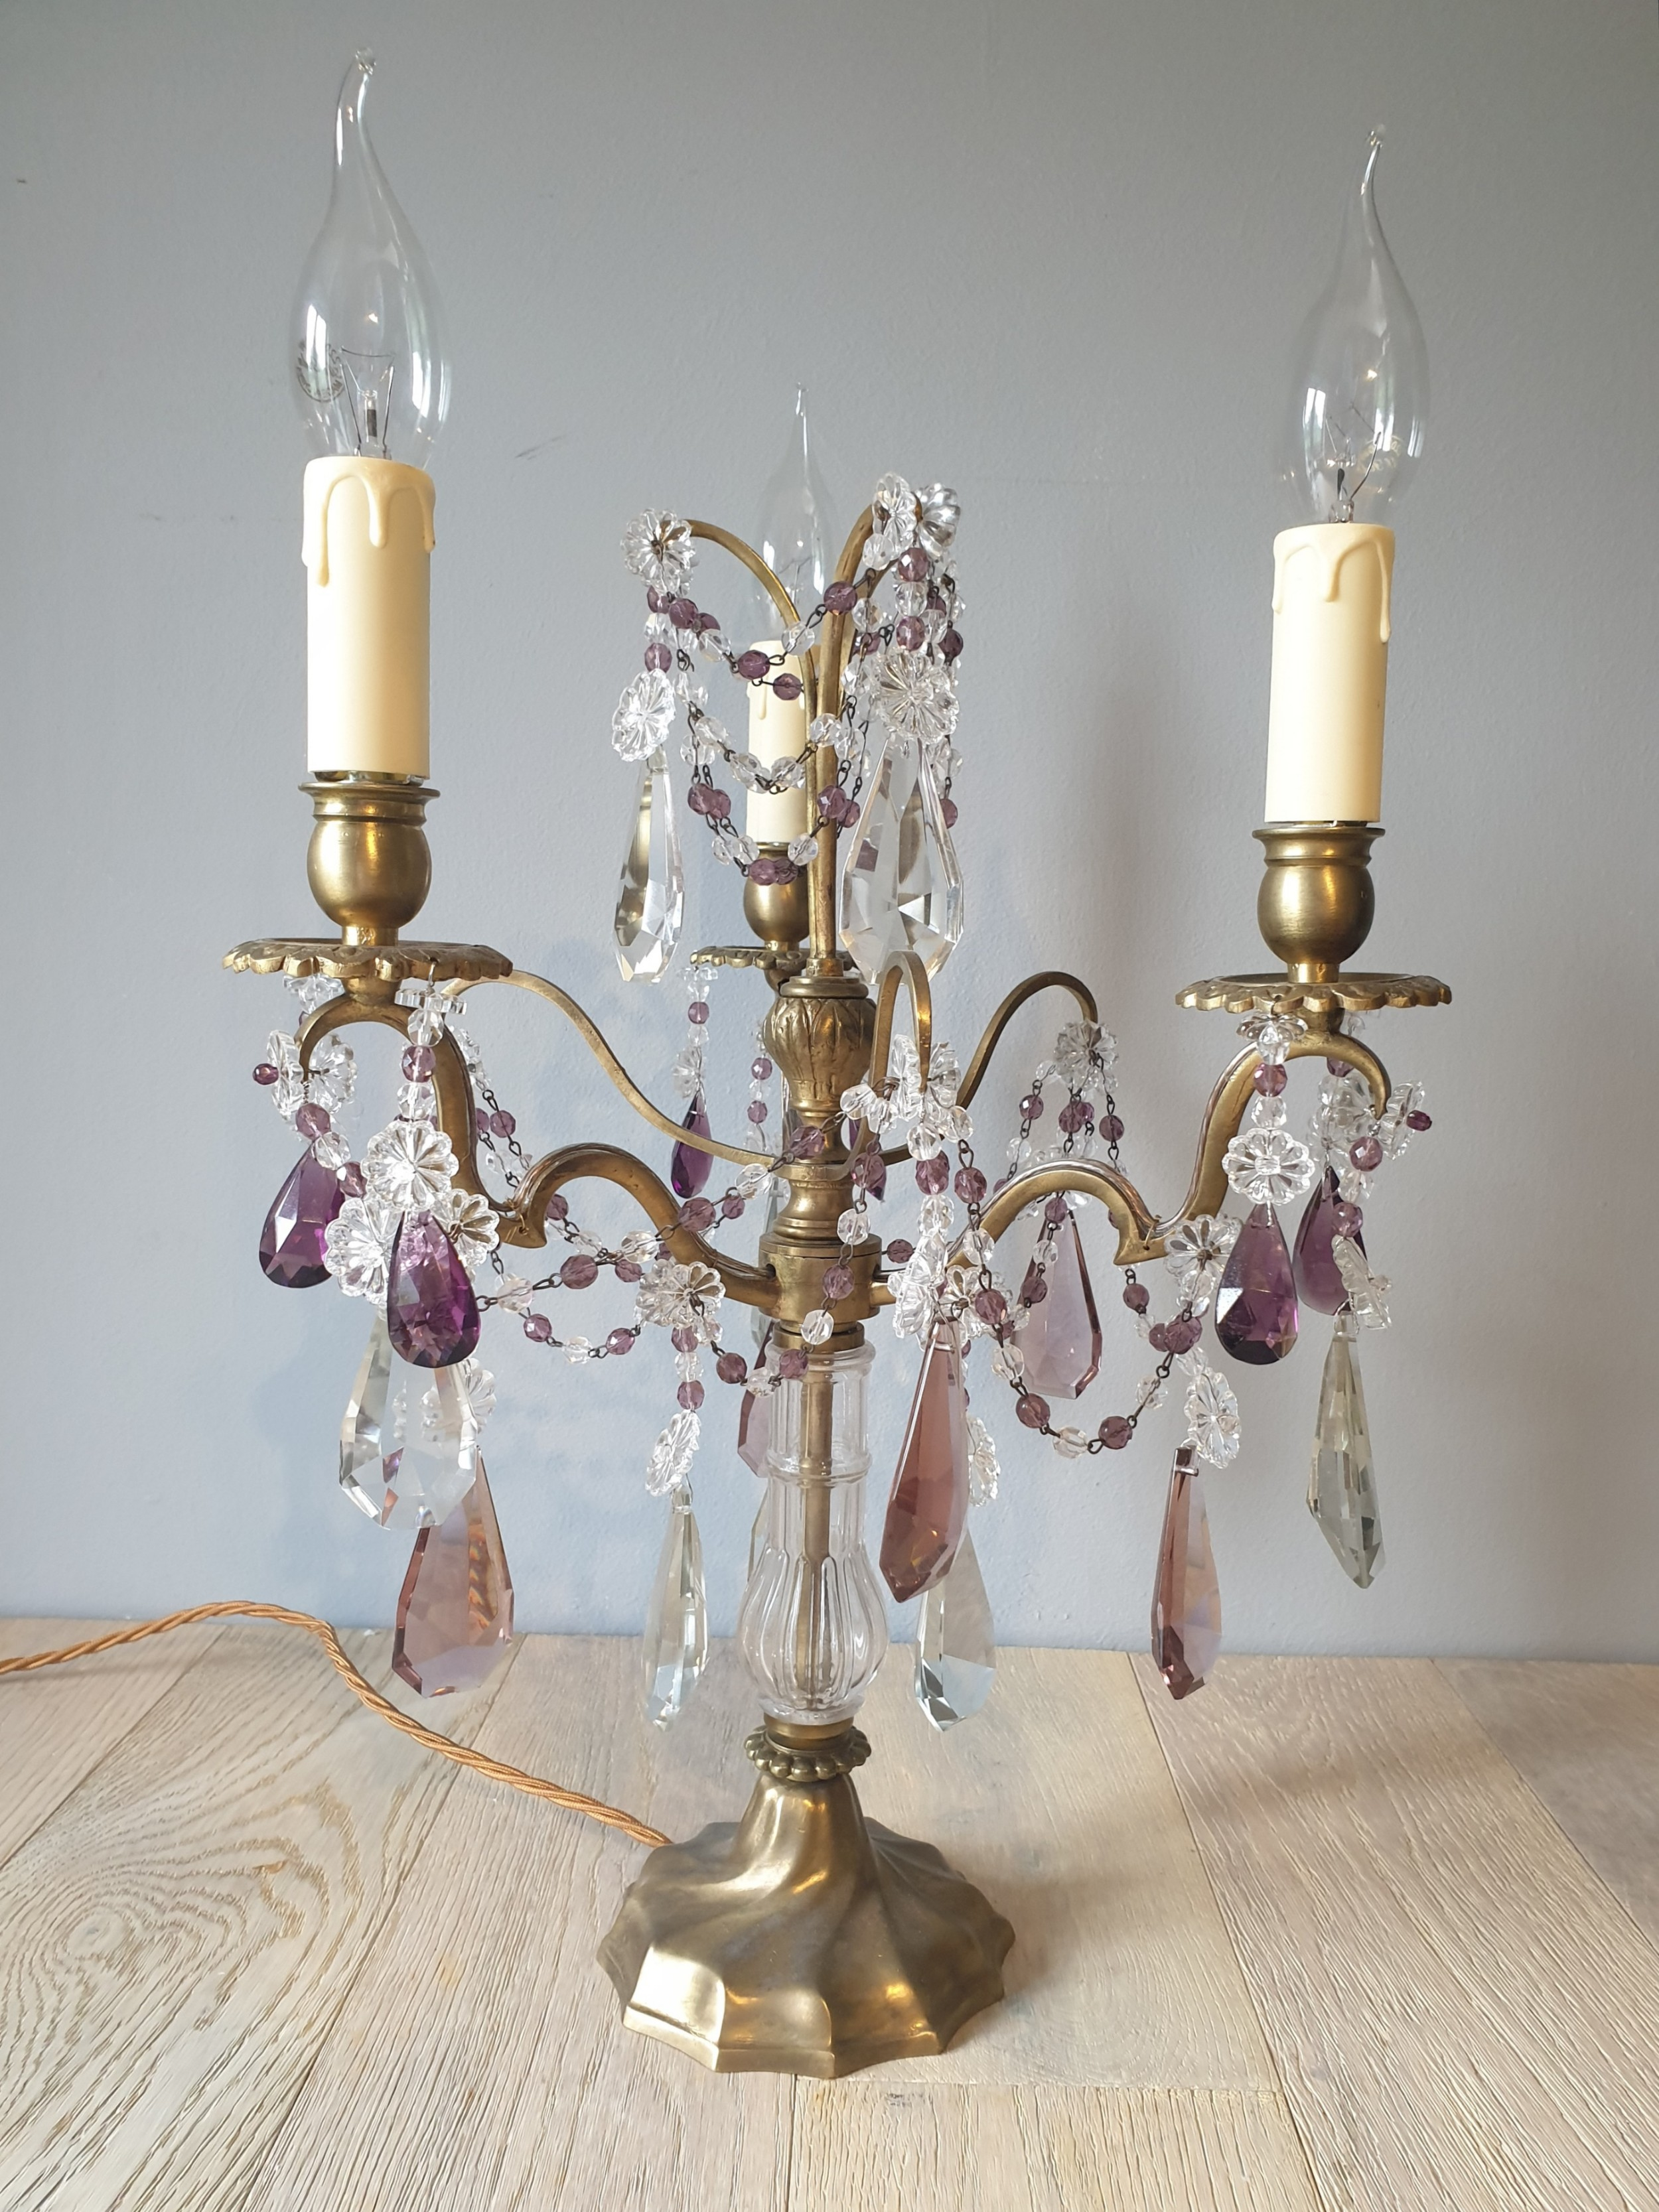 c1930 french 3 arm gilded brass crystal candelabra rewired and pat tested